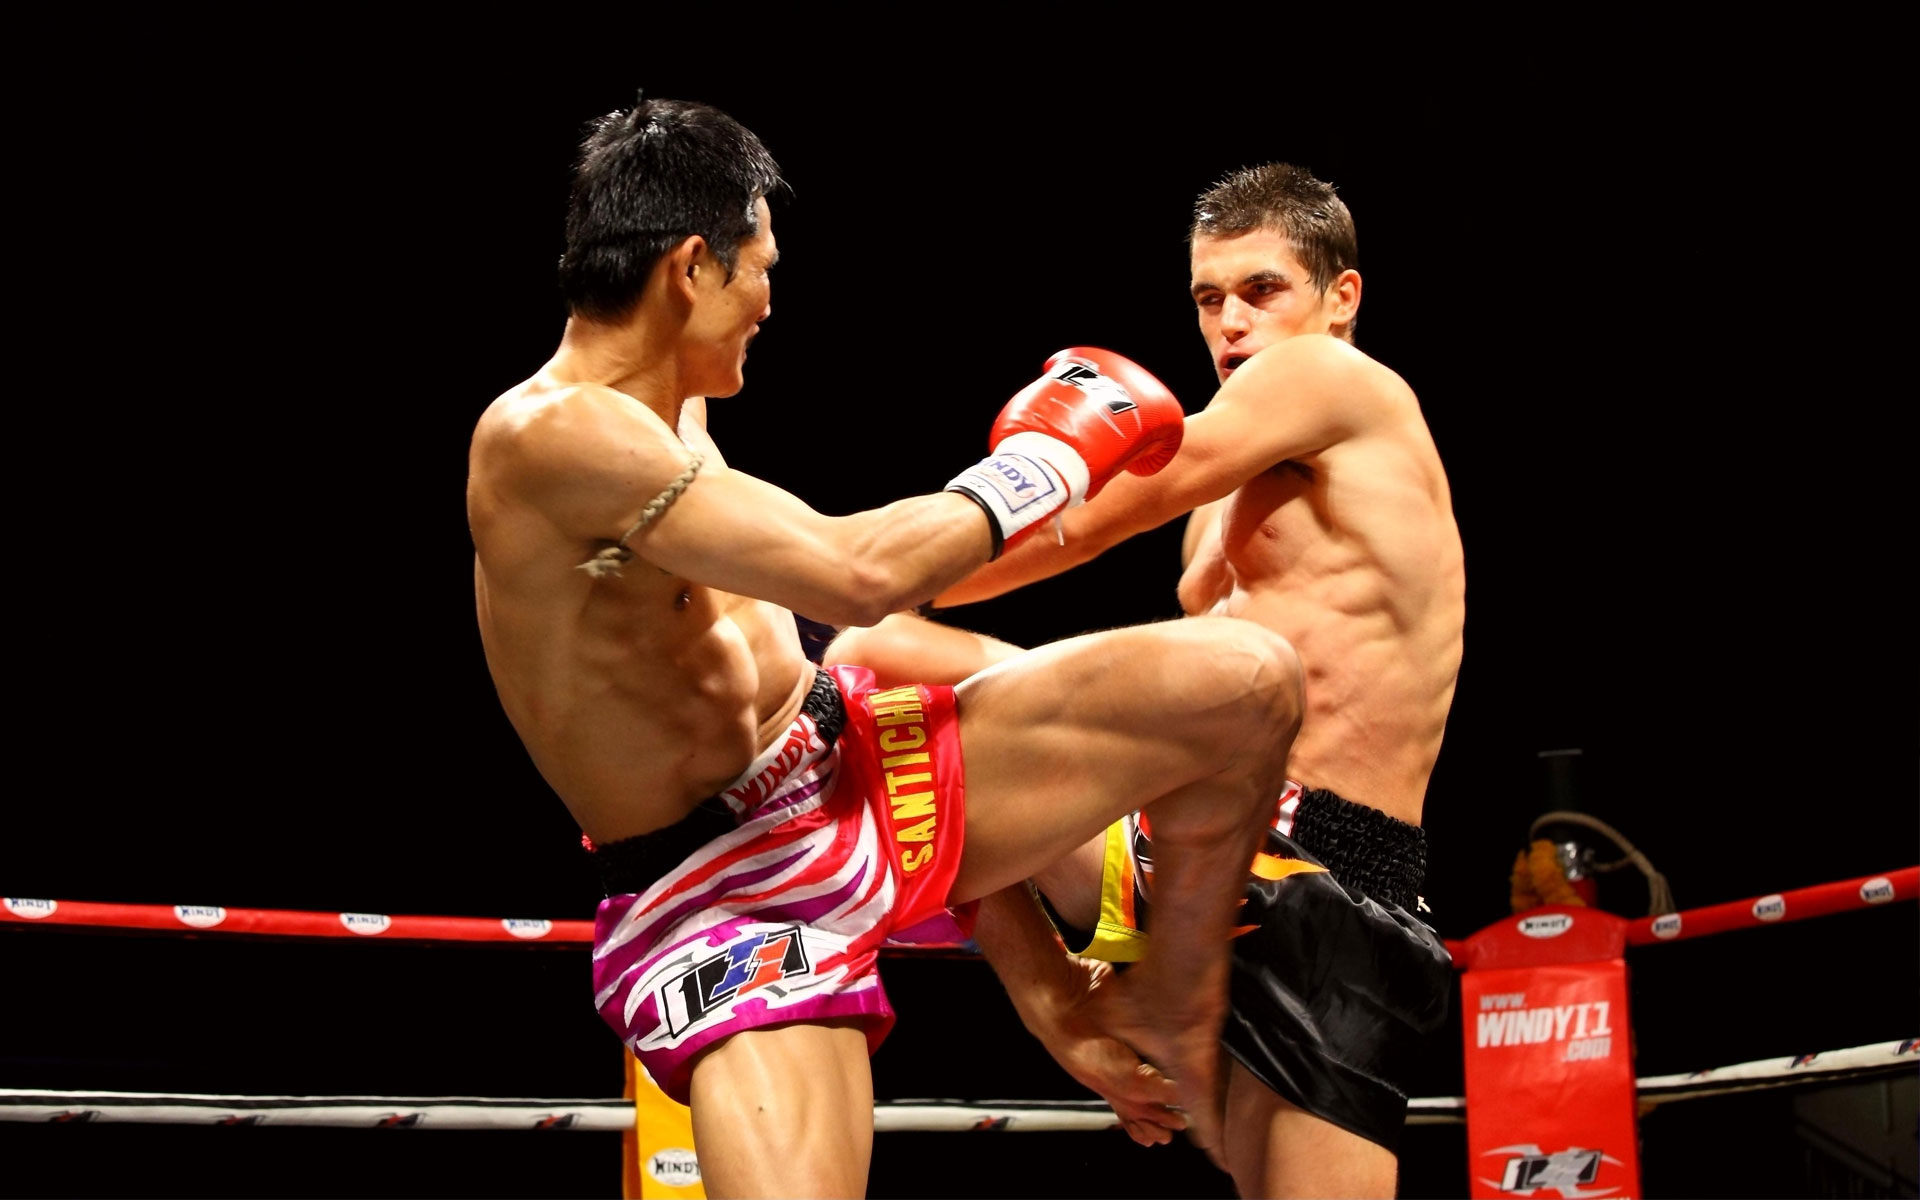 Hong Kong Muay Thai